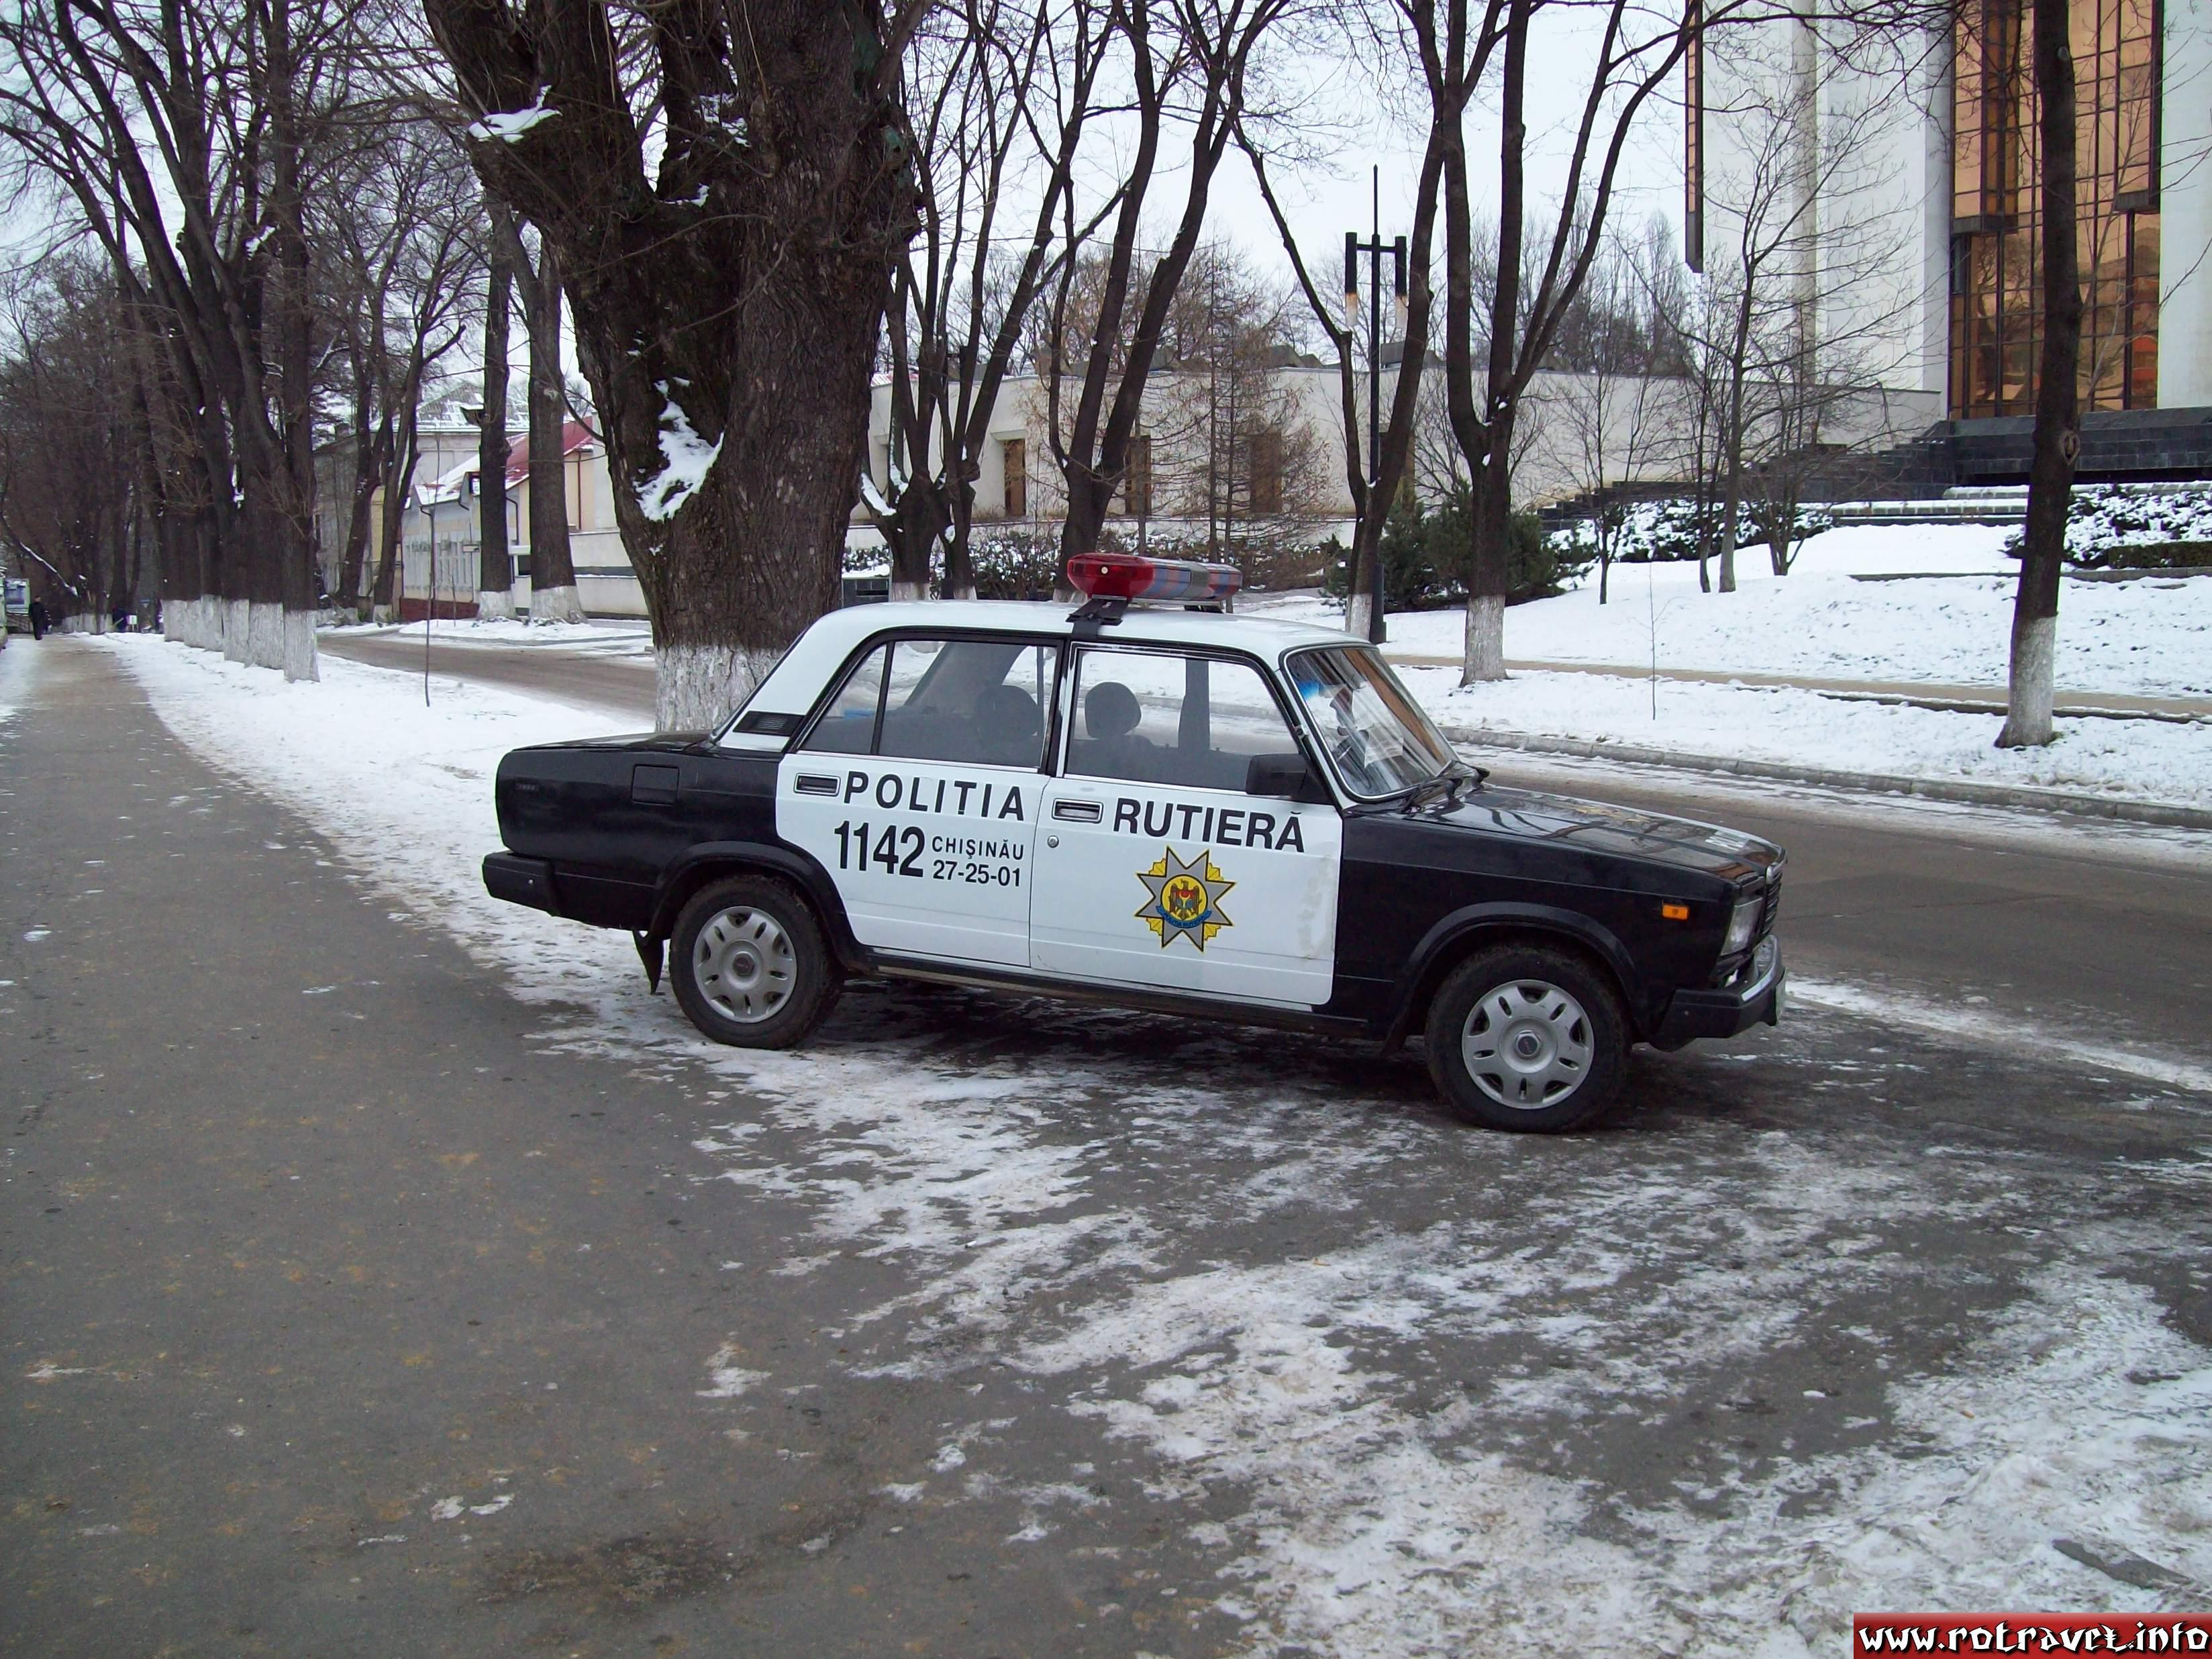 An old soviet Lada car at the Moldavian Police